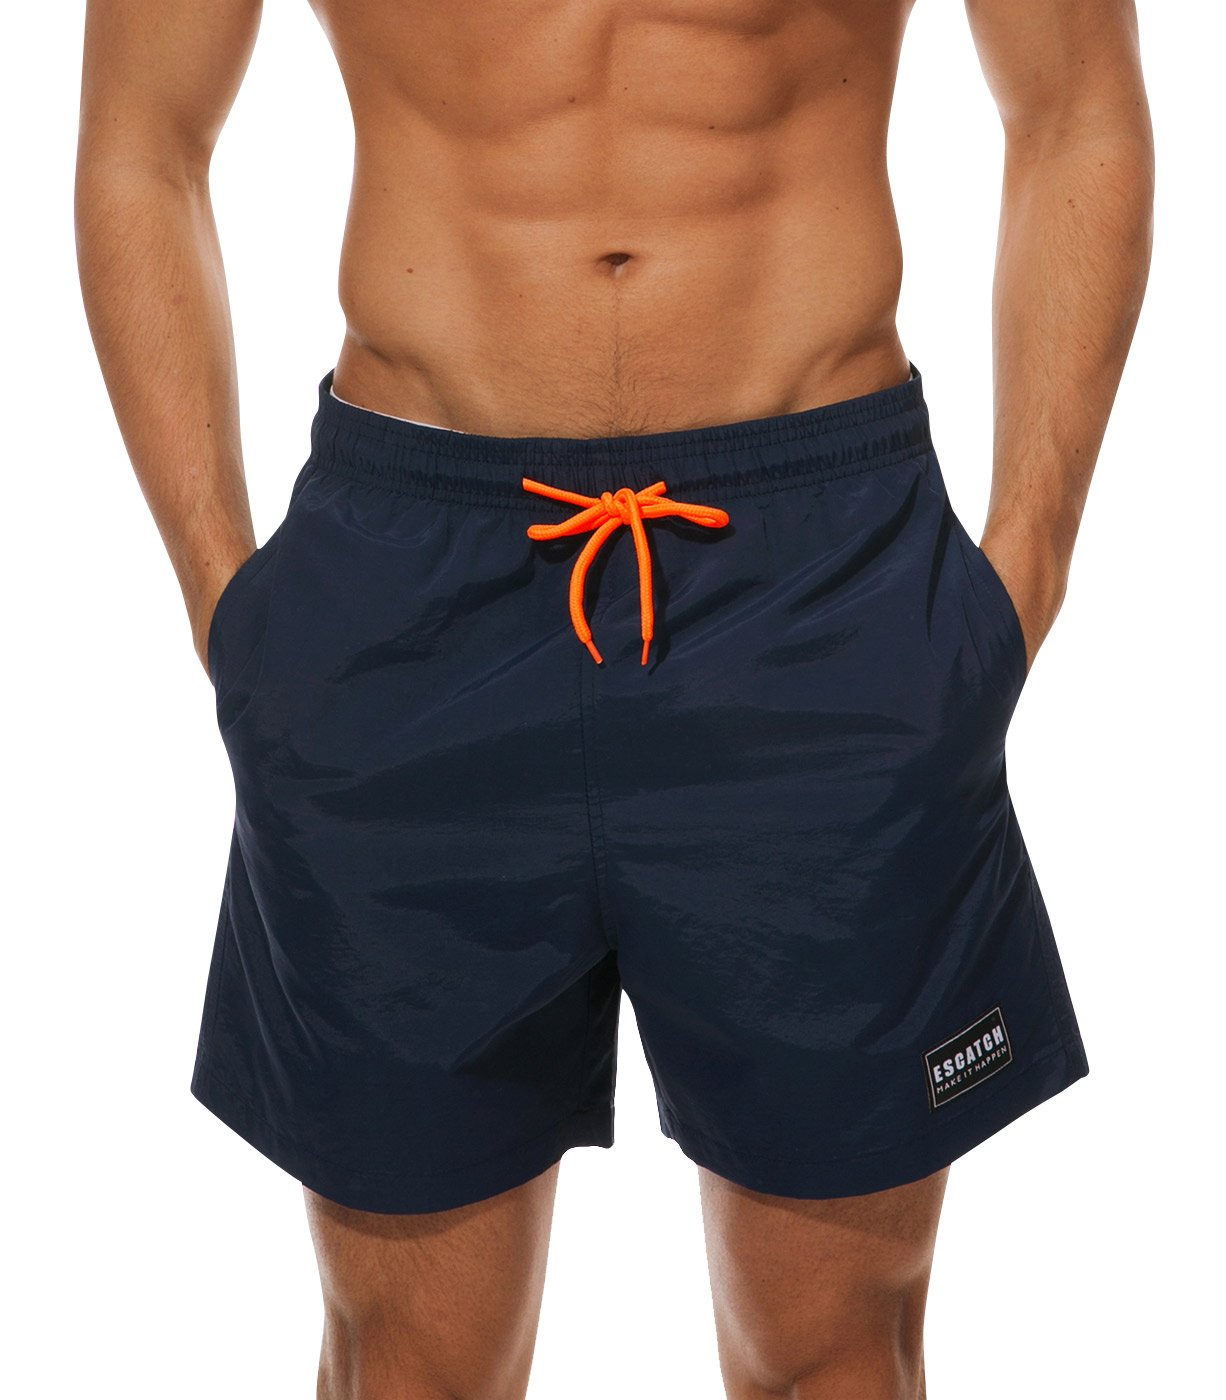 ESCATCH Big Boys Swim Trunks Slim Fit Quick Dry Elastic Waist Blue Men's Swim Trunks Quick Dry Bathing Suits Summer Swim Shorts